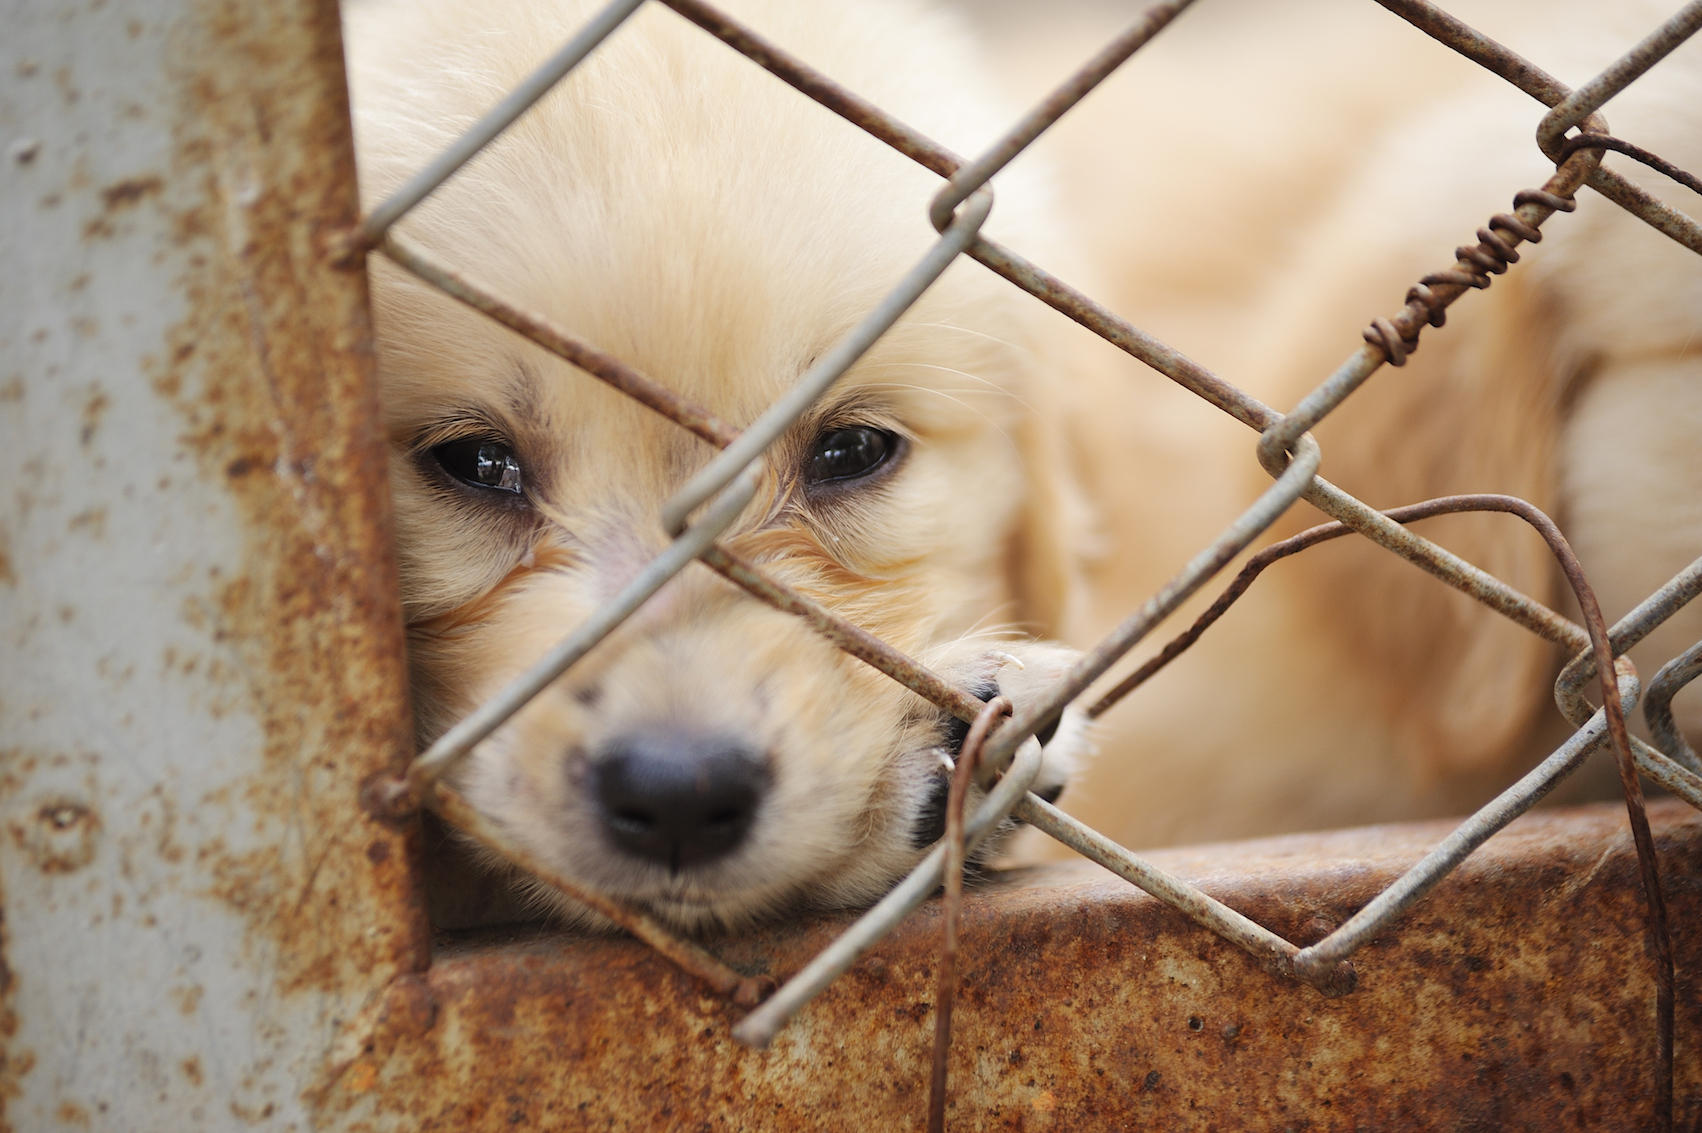 UK Prime Minister Theresa May has vowed to end the inhumane act of puppy farming and mandate that dogs can only be sold by licensed breeders.